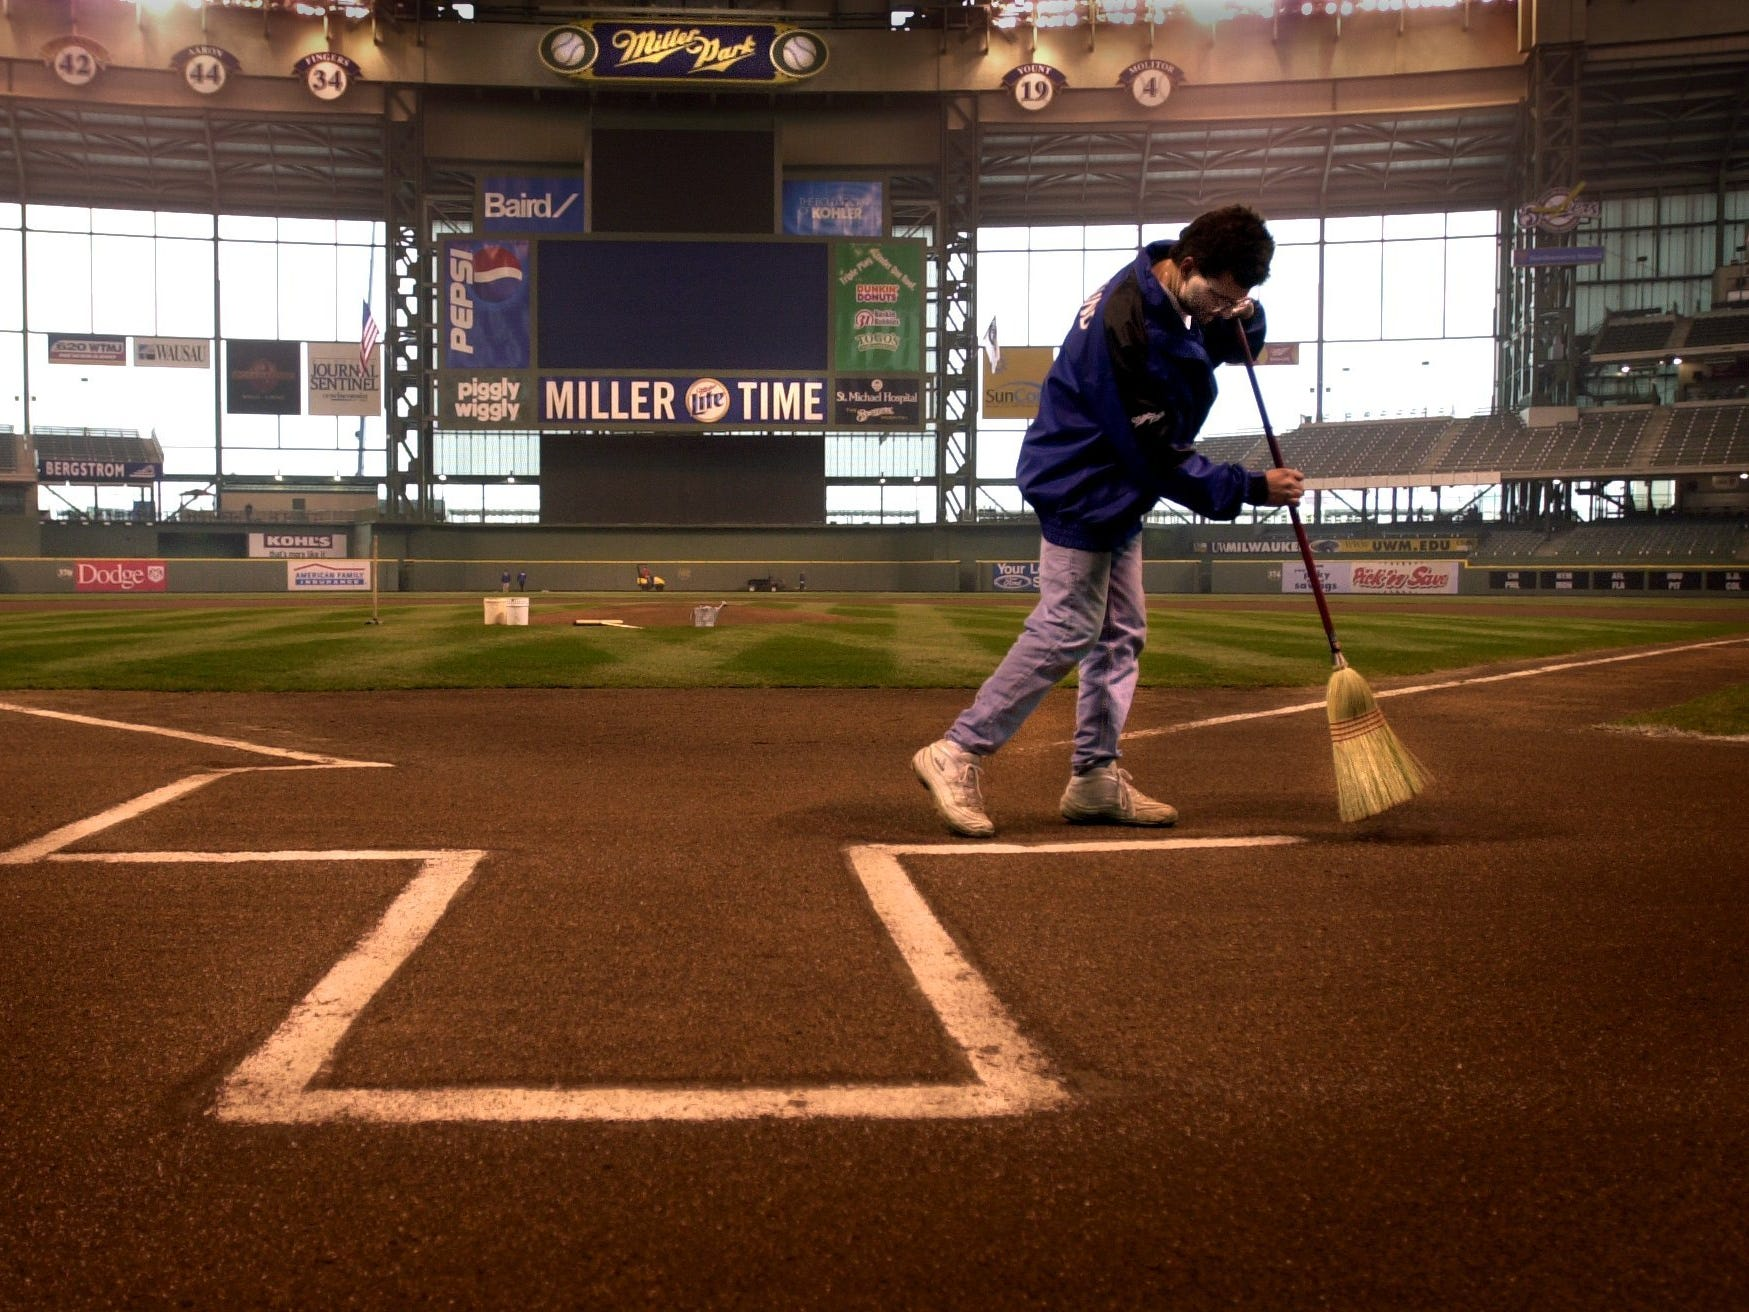 After the area was carefully groomed, home plate was dusted off by Milwaukee Brewers grounds crew member Tom Lund in 2001. The Brewers prepared for their first home opener in Miller Park, against the Reds.